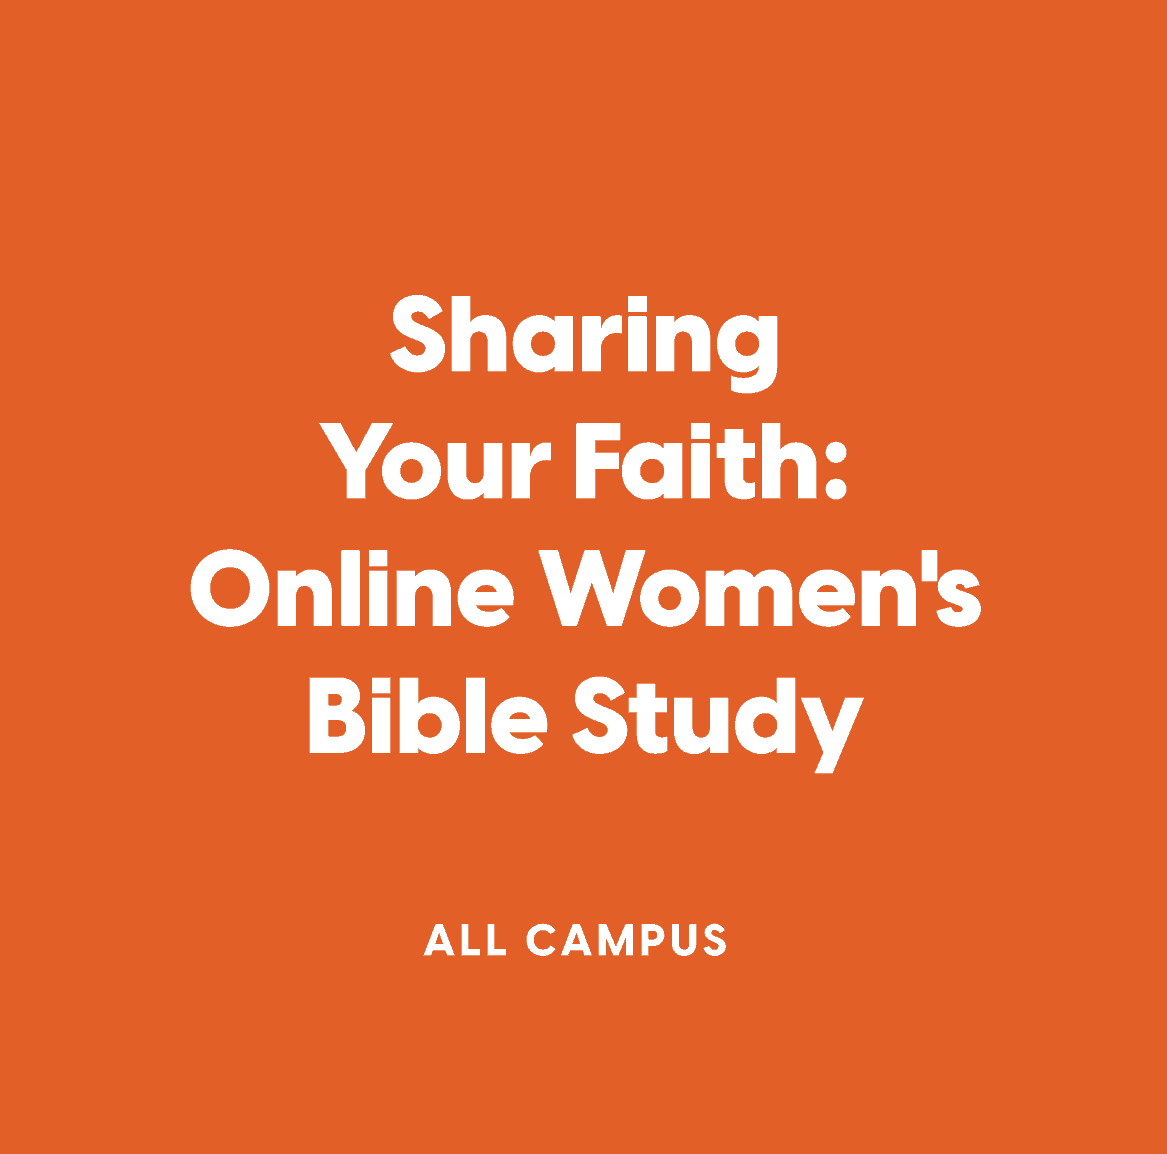 Online Women's Bible Study:  Sharing Your Faith